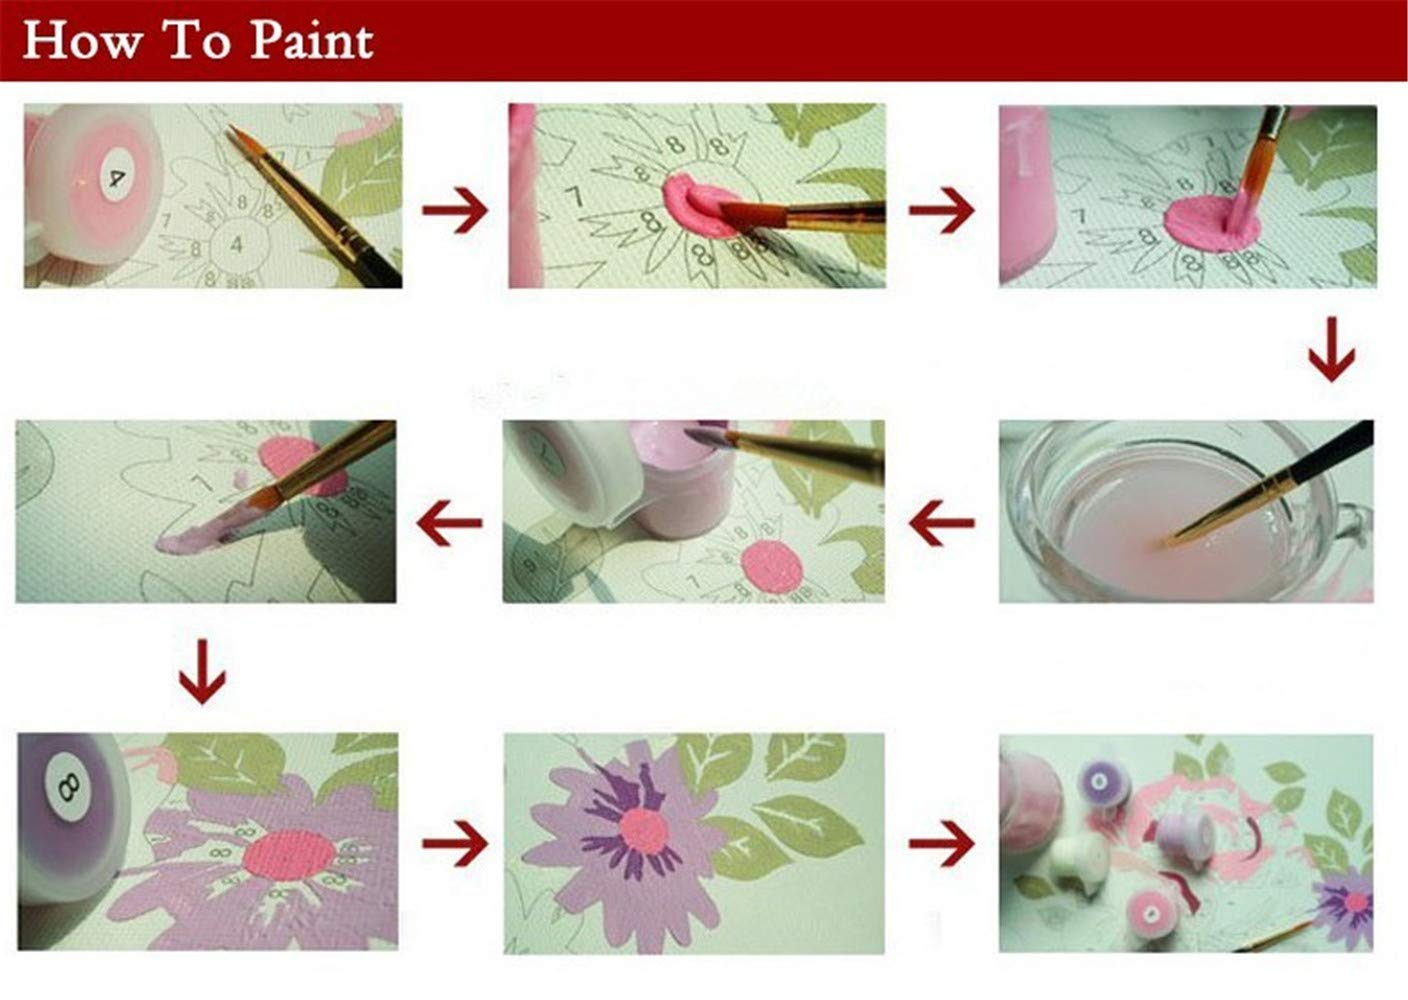 UJGIOY Painting By Numbers No Frame Diy Oil Painting By Number Paint By Number Kit Home Decoration Module Oil Paintings Pictures Sun Flower Blossom 40X50Cm Painting By Numbers Arts & Crafts